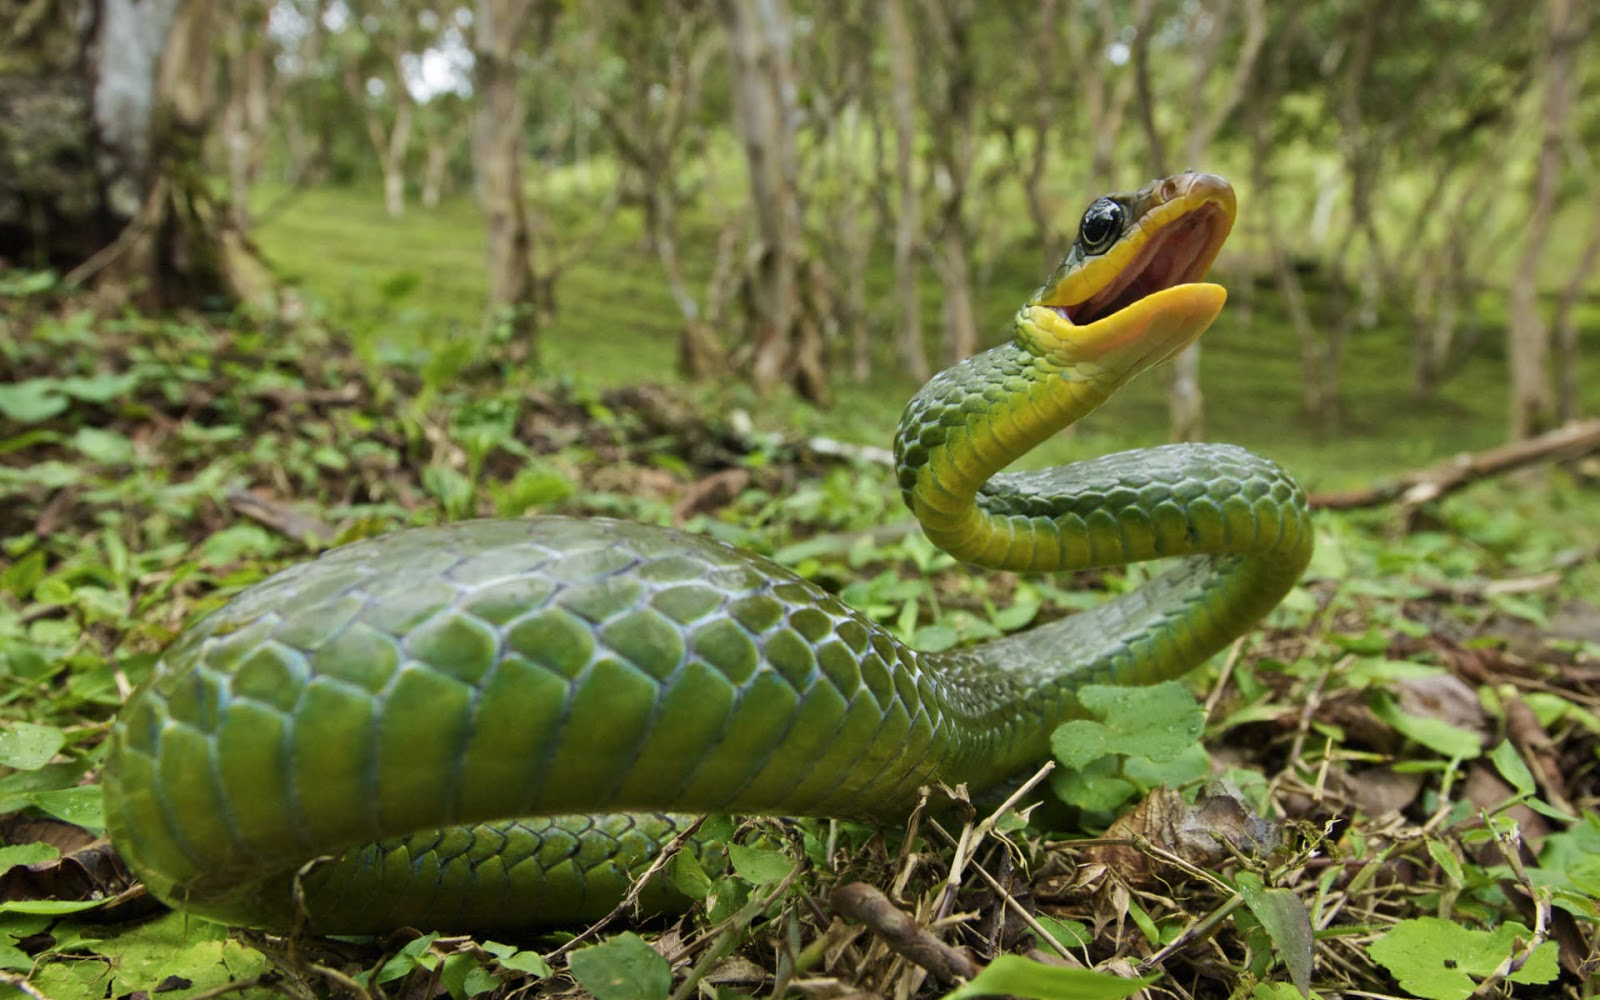 Download Free Hd Wallpapers Of Snakes For Android